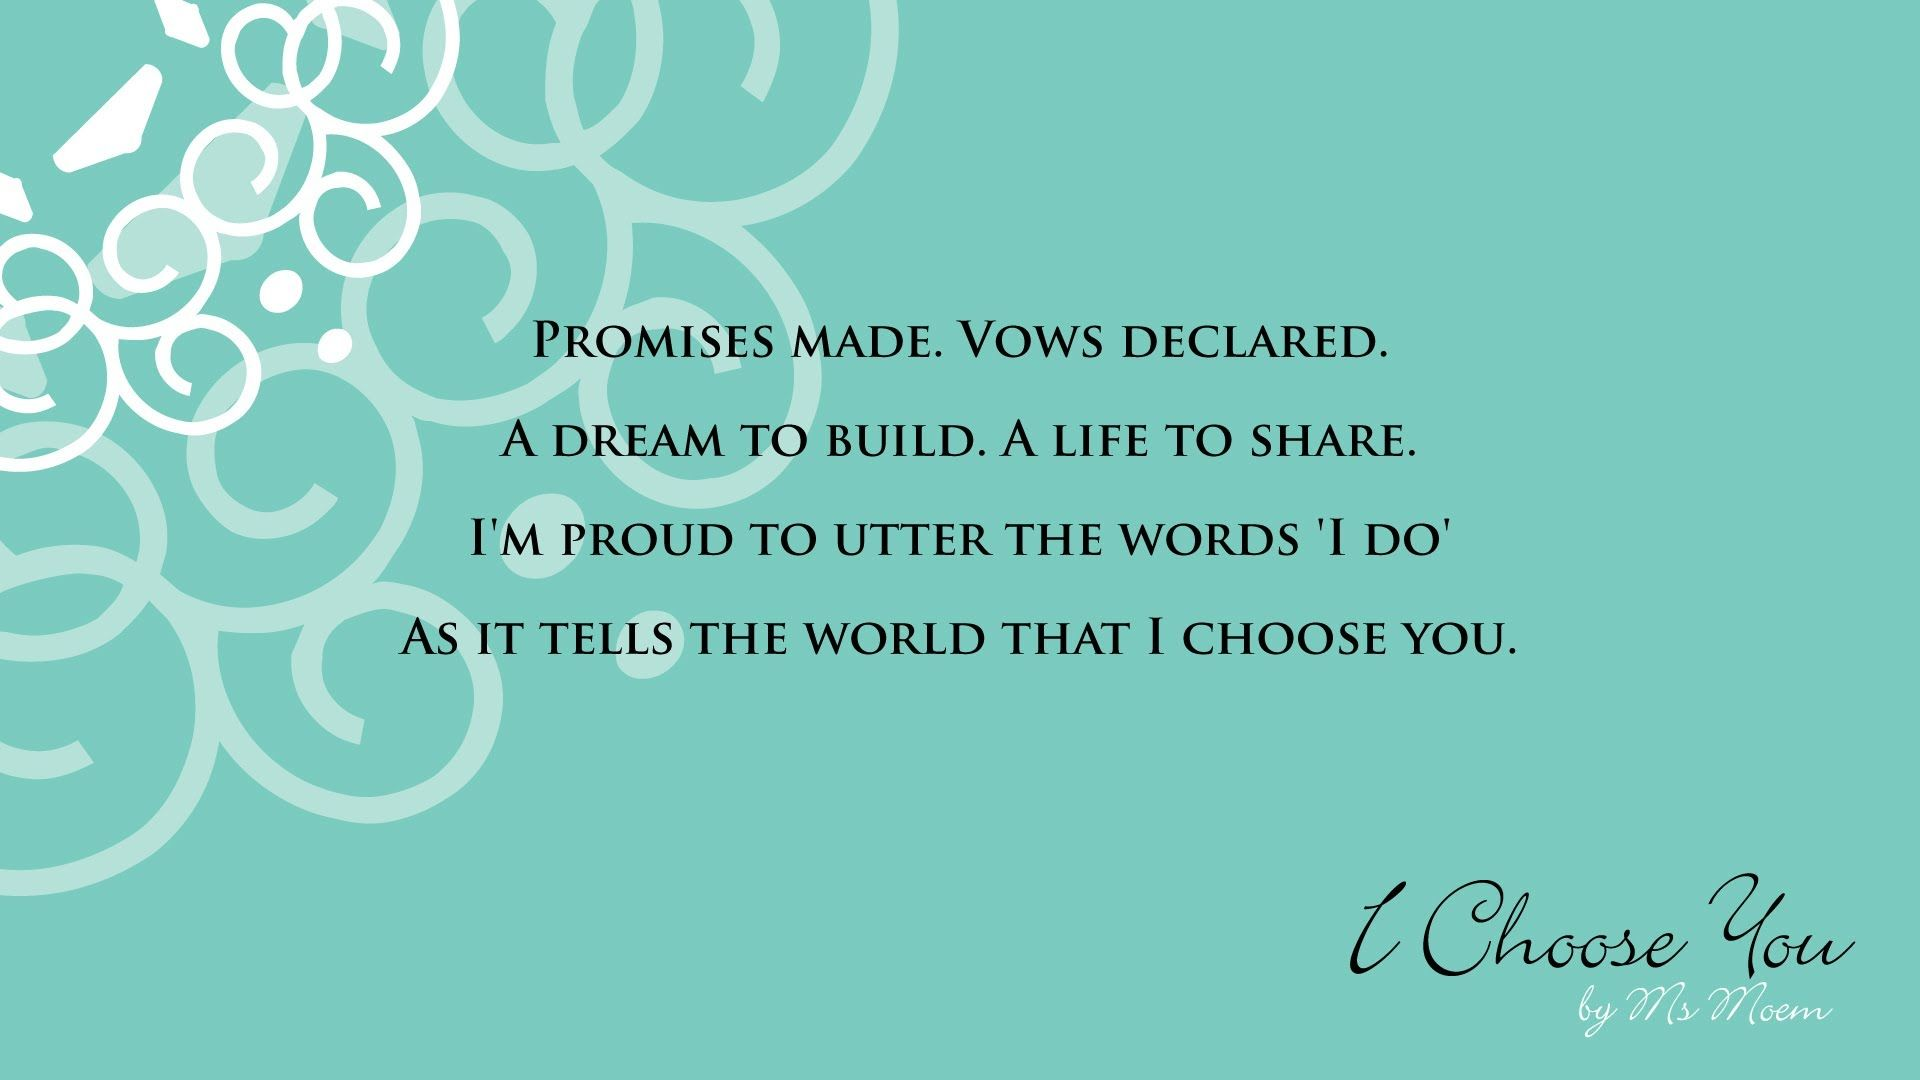 I Choose You Is A Wedding Poem Written By Ms Moem This Suitable For Use At Civil Ceremony And As Part Of More Traditional Church